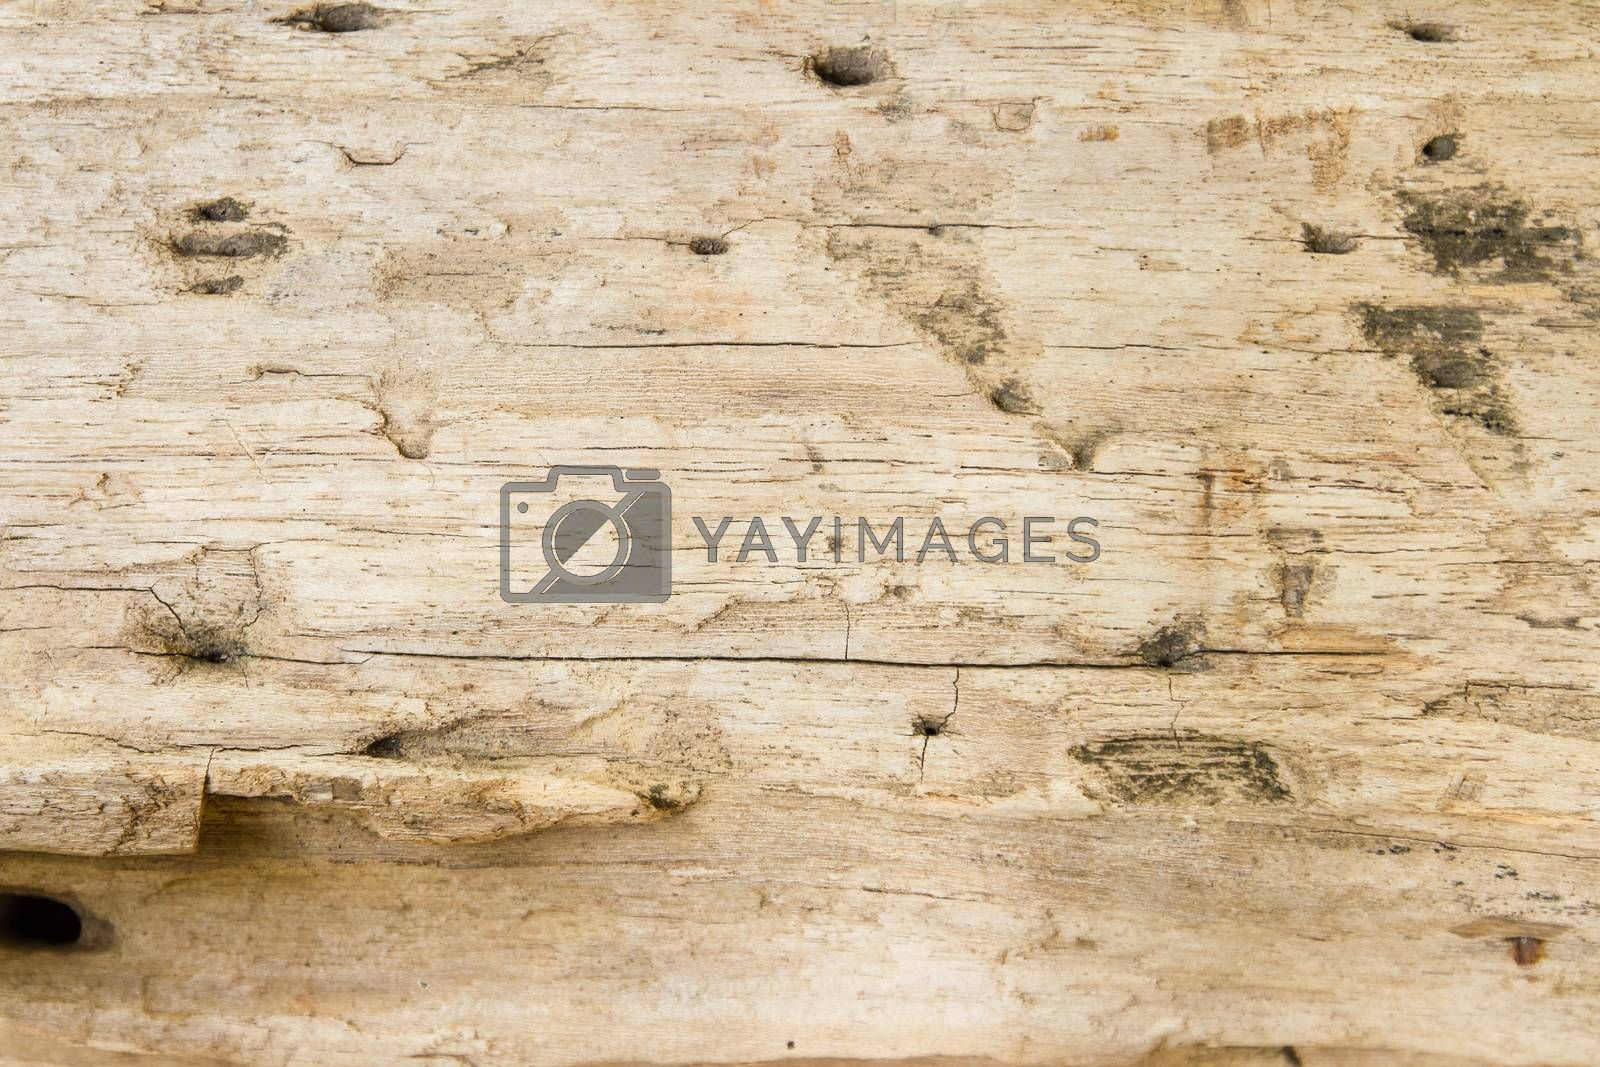 Royalty free image of Wood texture background by kasinv